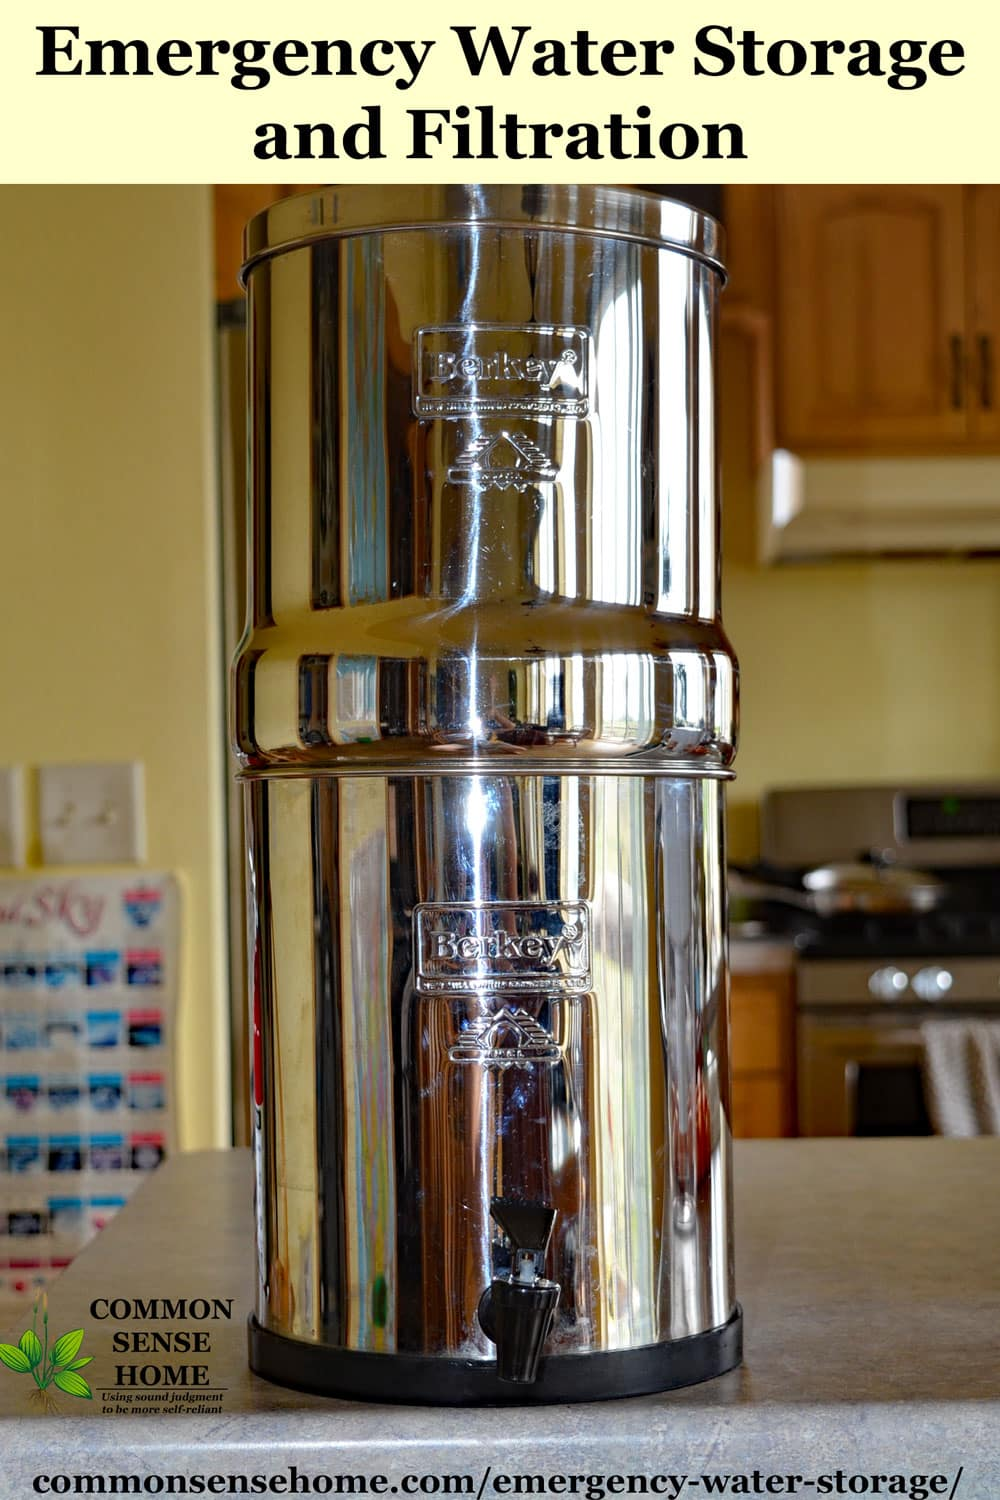 Big Berkey emergency water filter